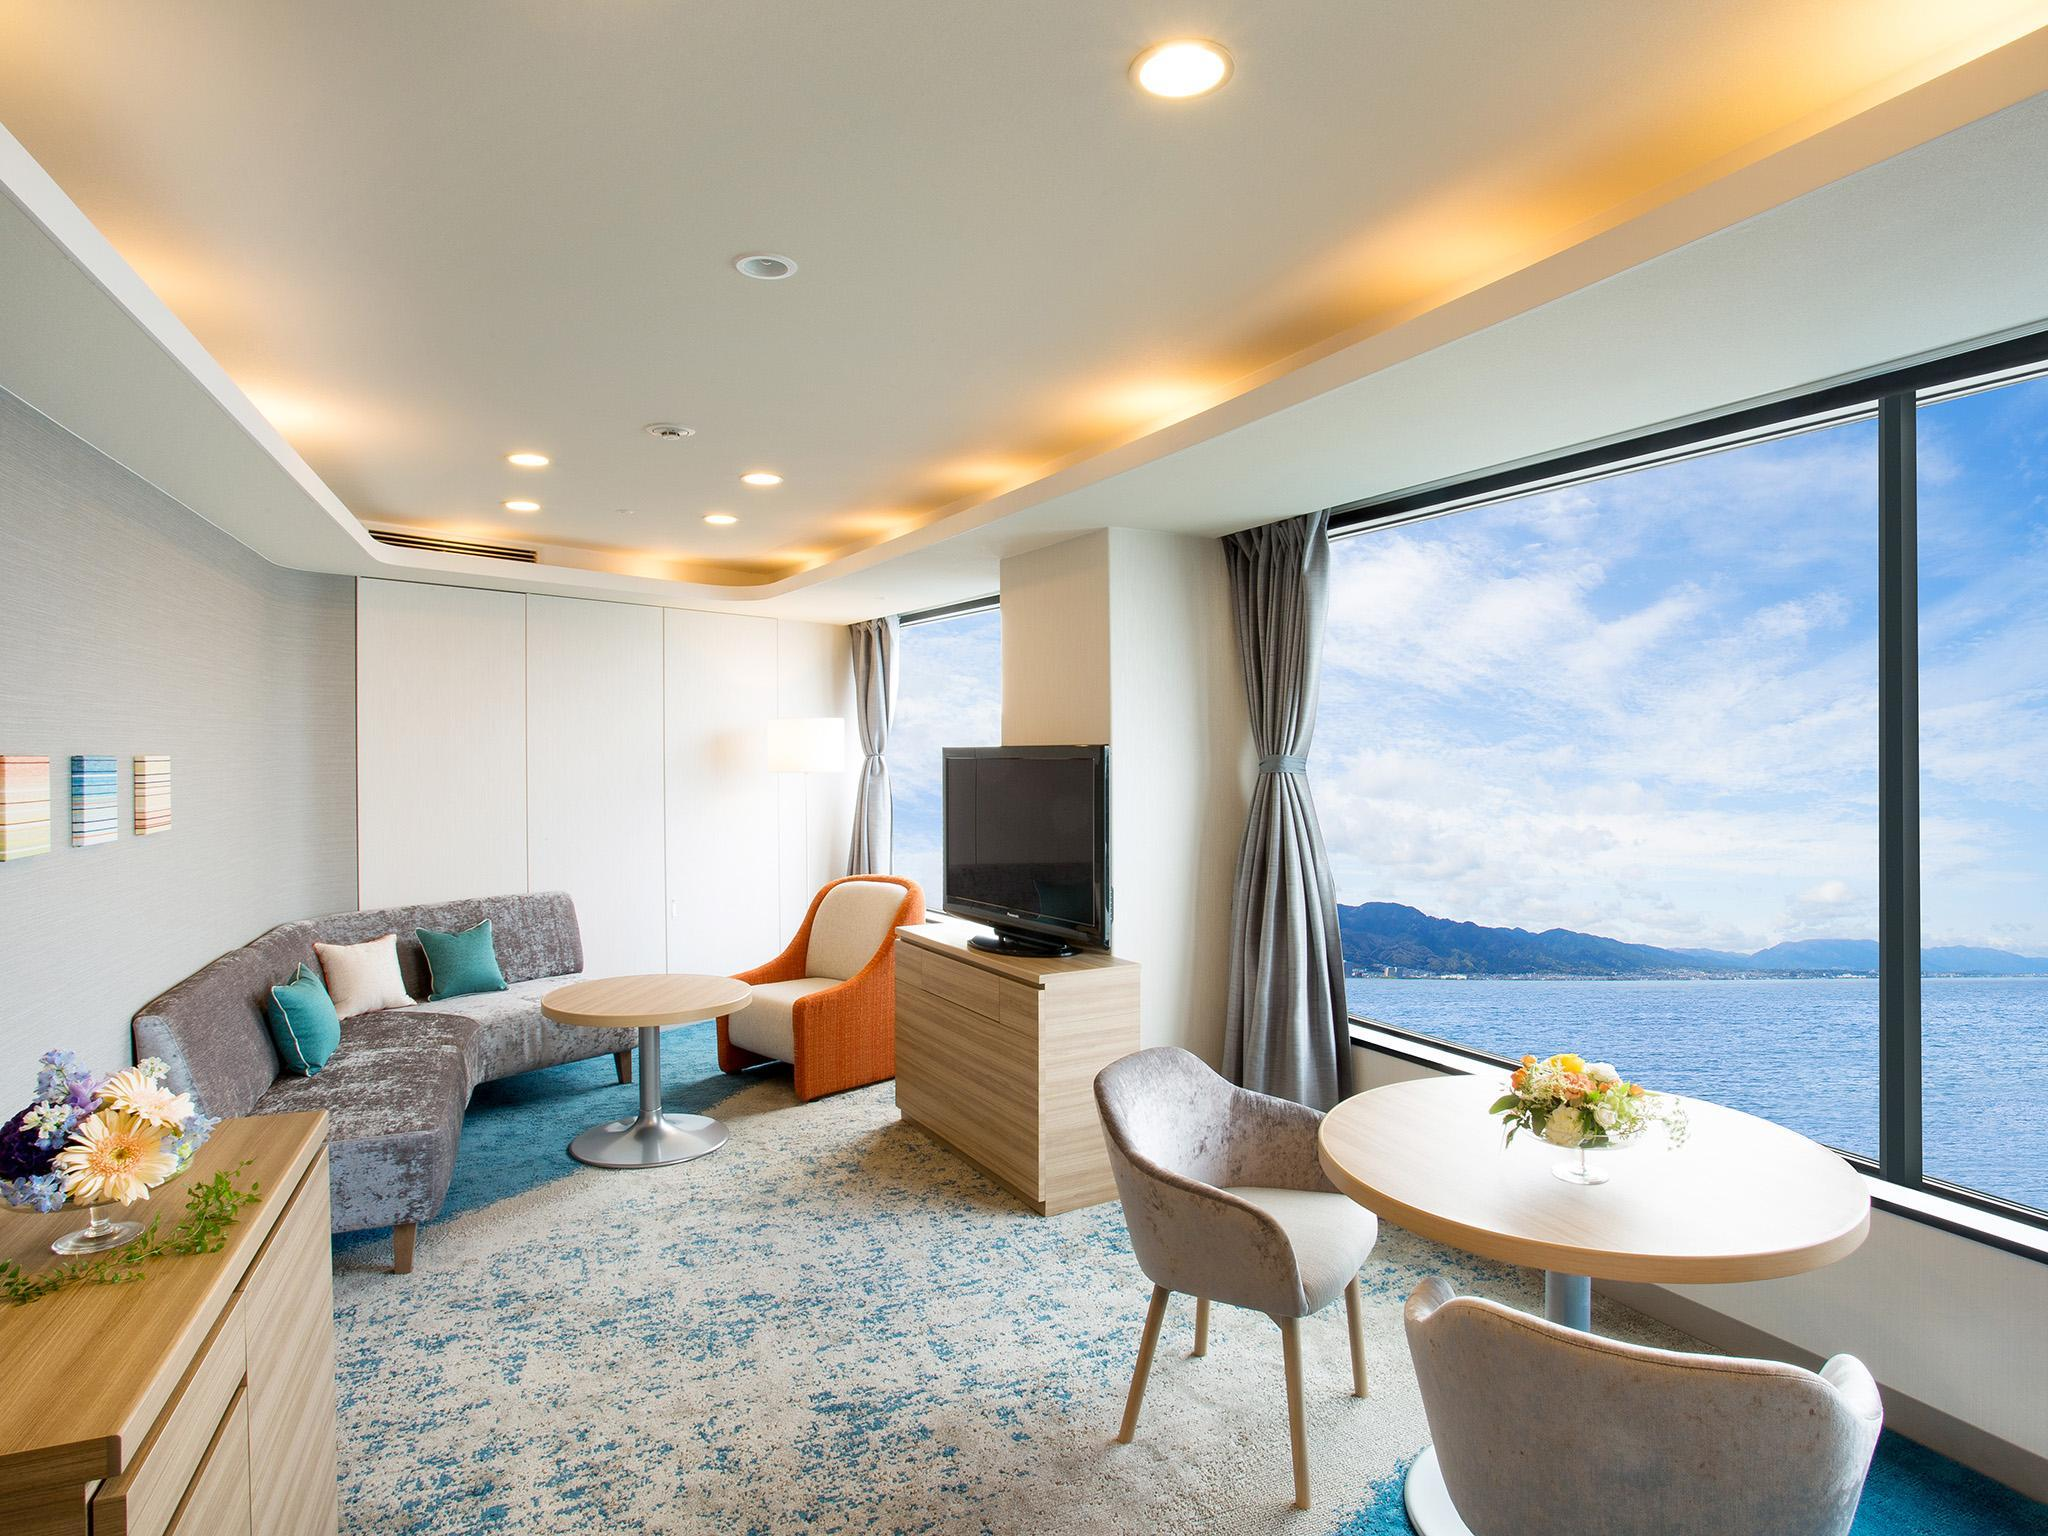 Suite Lantai Sky dengan Ranjang Single – Baru Direnovasi (Sky Floor Suite with Single Bed - Newly Renovated)